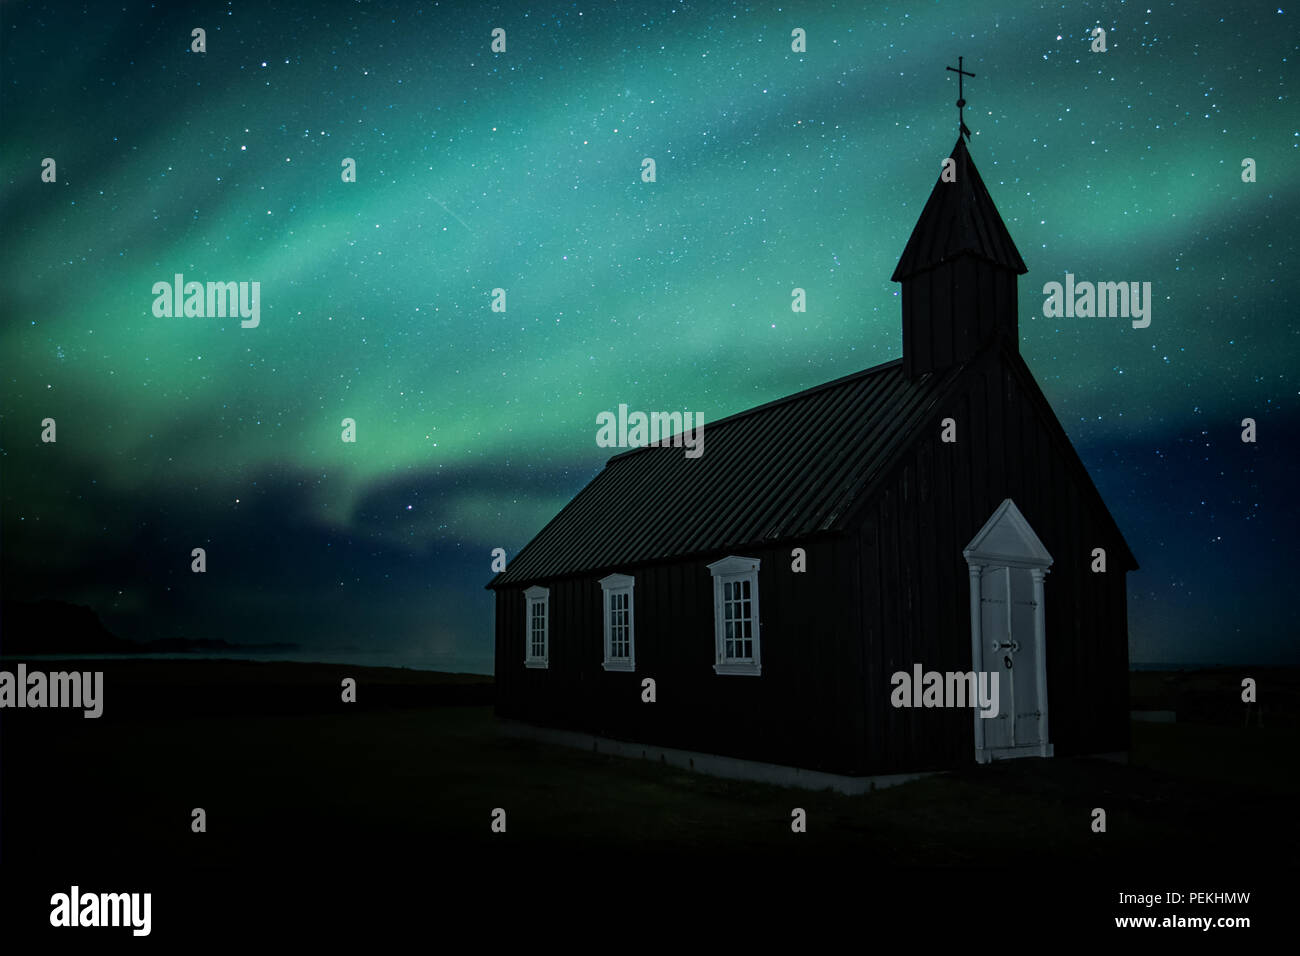 Budir Church Under the Aurora Borealis and Northern Lights On the Snaefellsnes Peninsula, Iceland - Stock Image